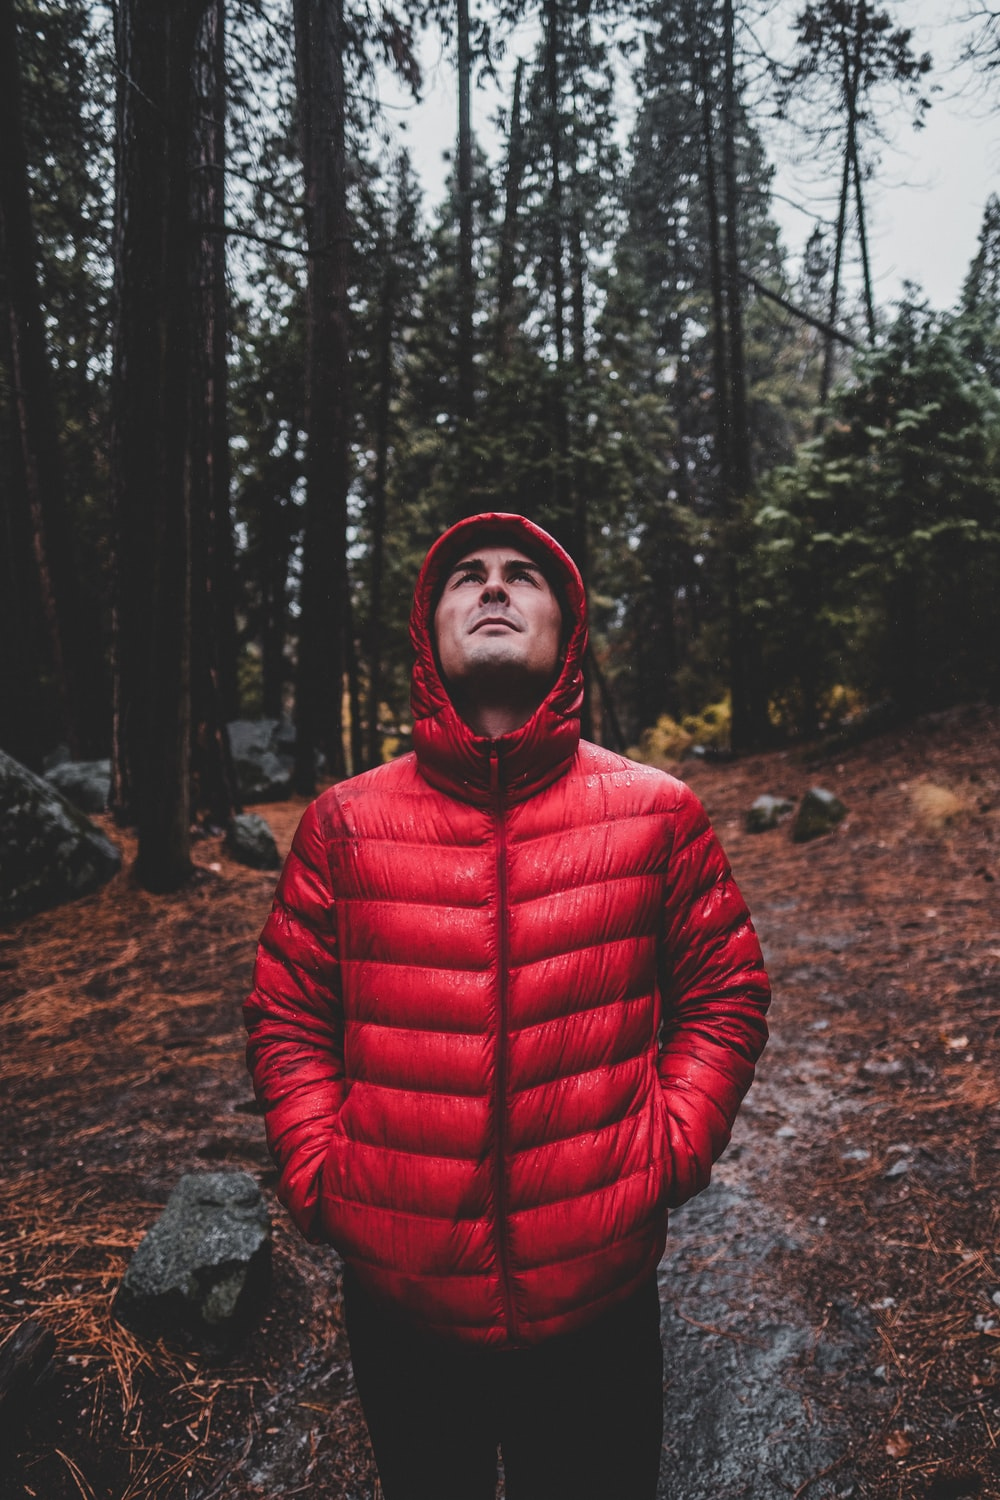 man in bubble jacket walking in forest during daytime